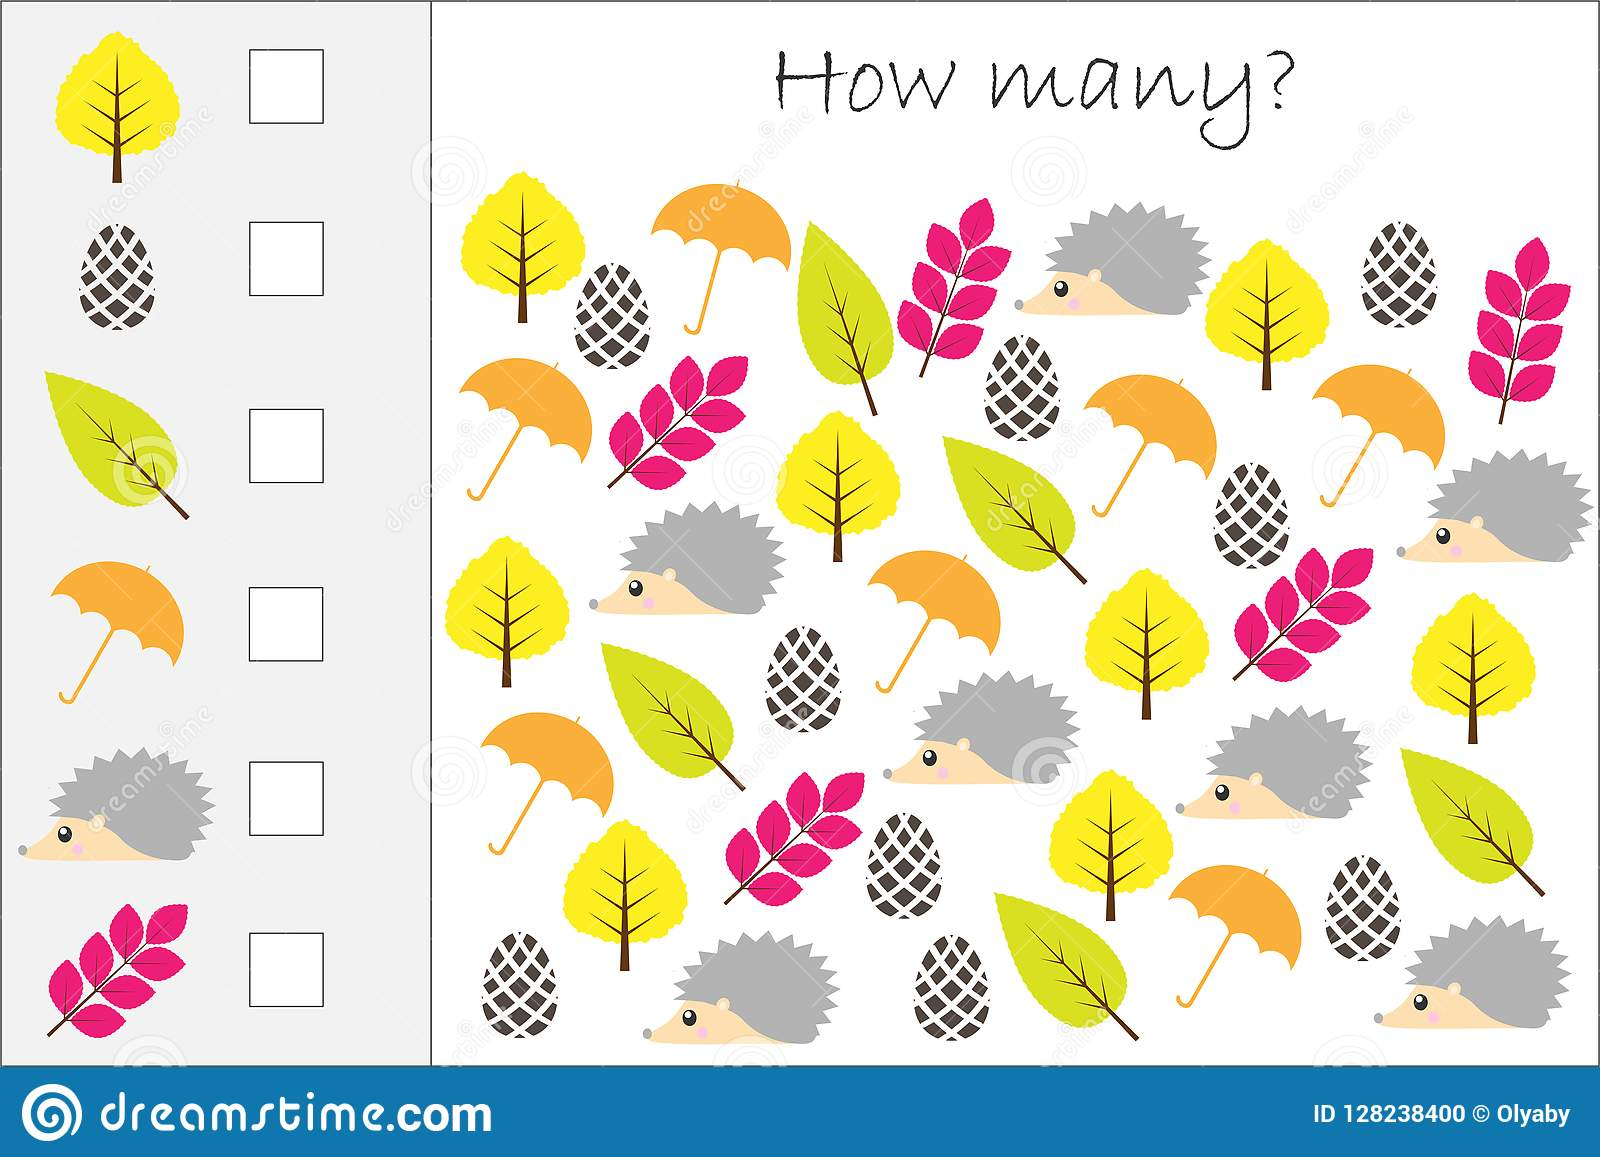 How Many Counting Game With Autumn Pictures For Kids Educational Maths Task For The Development